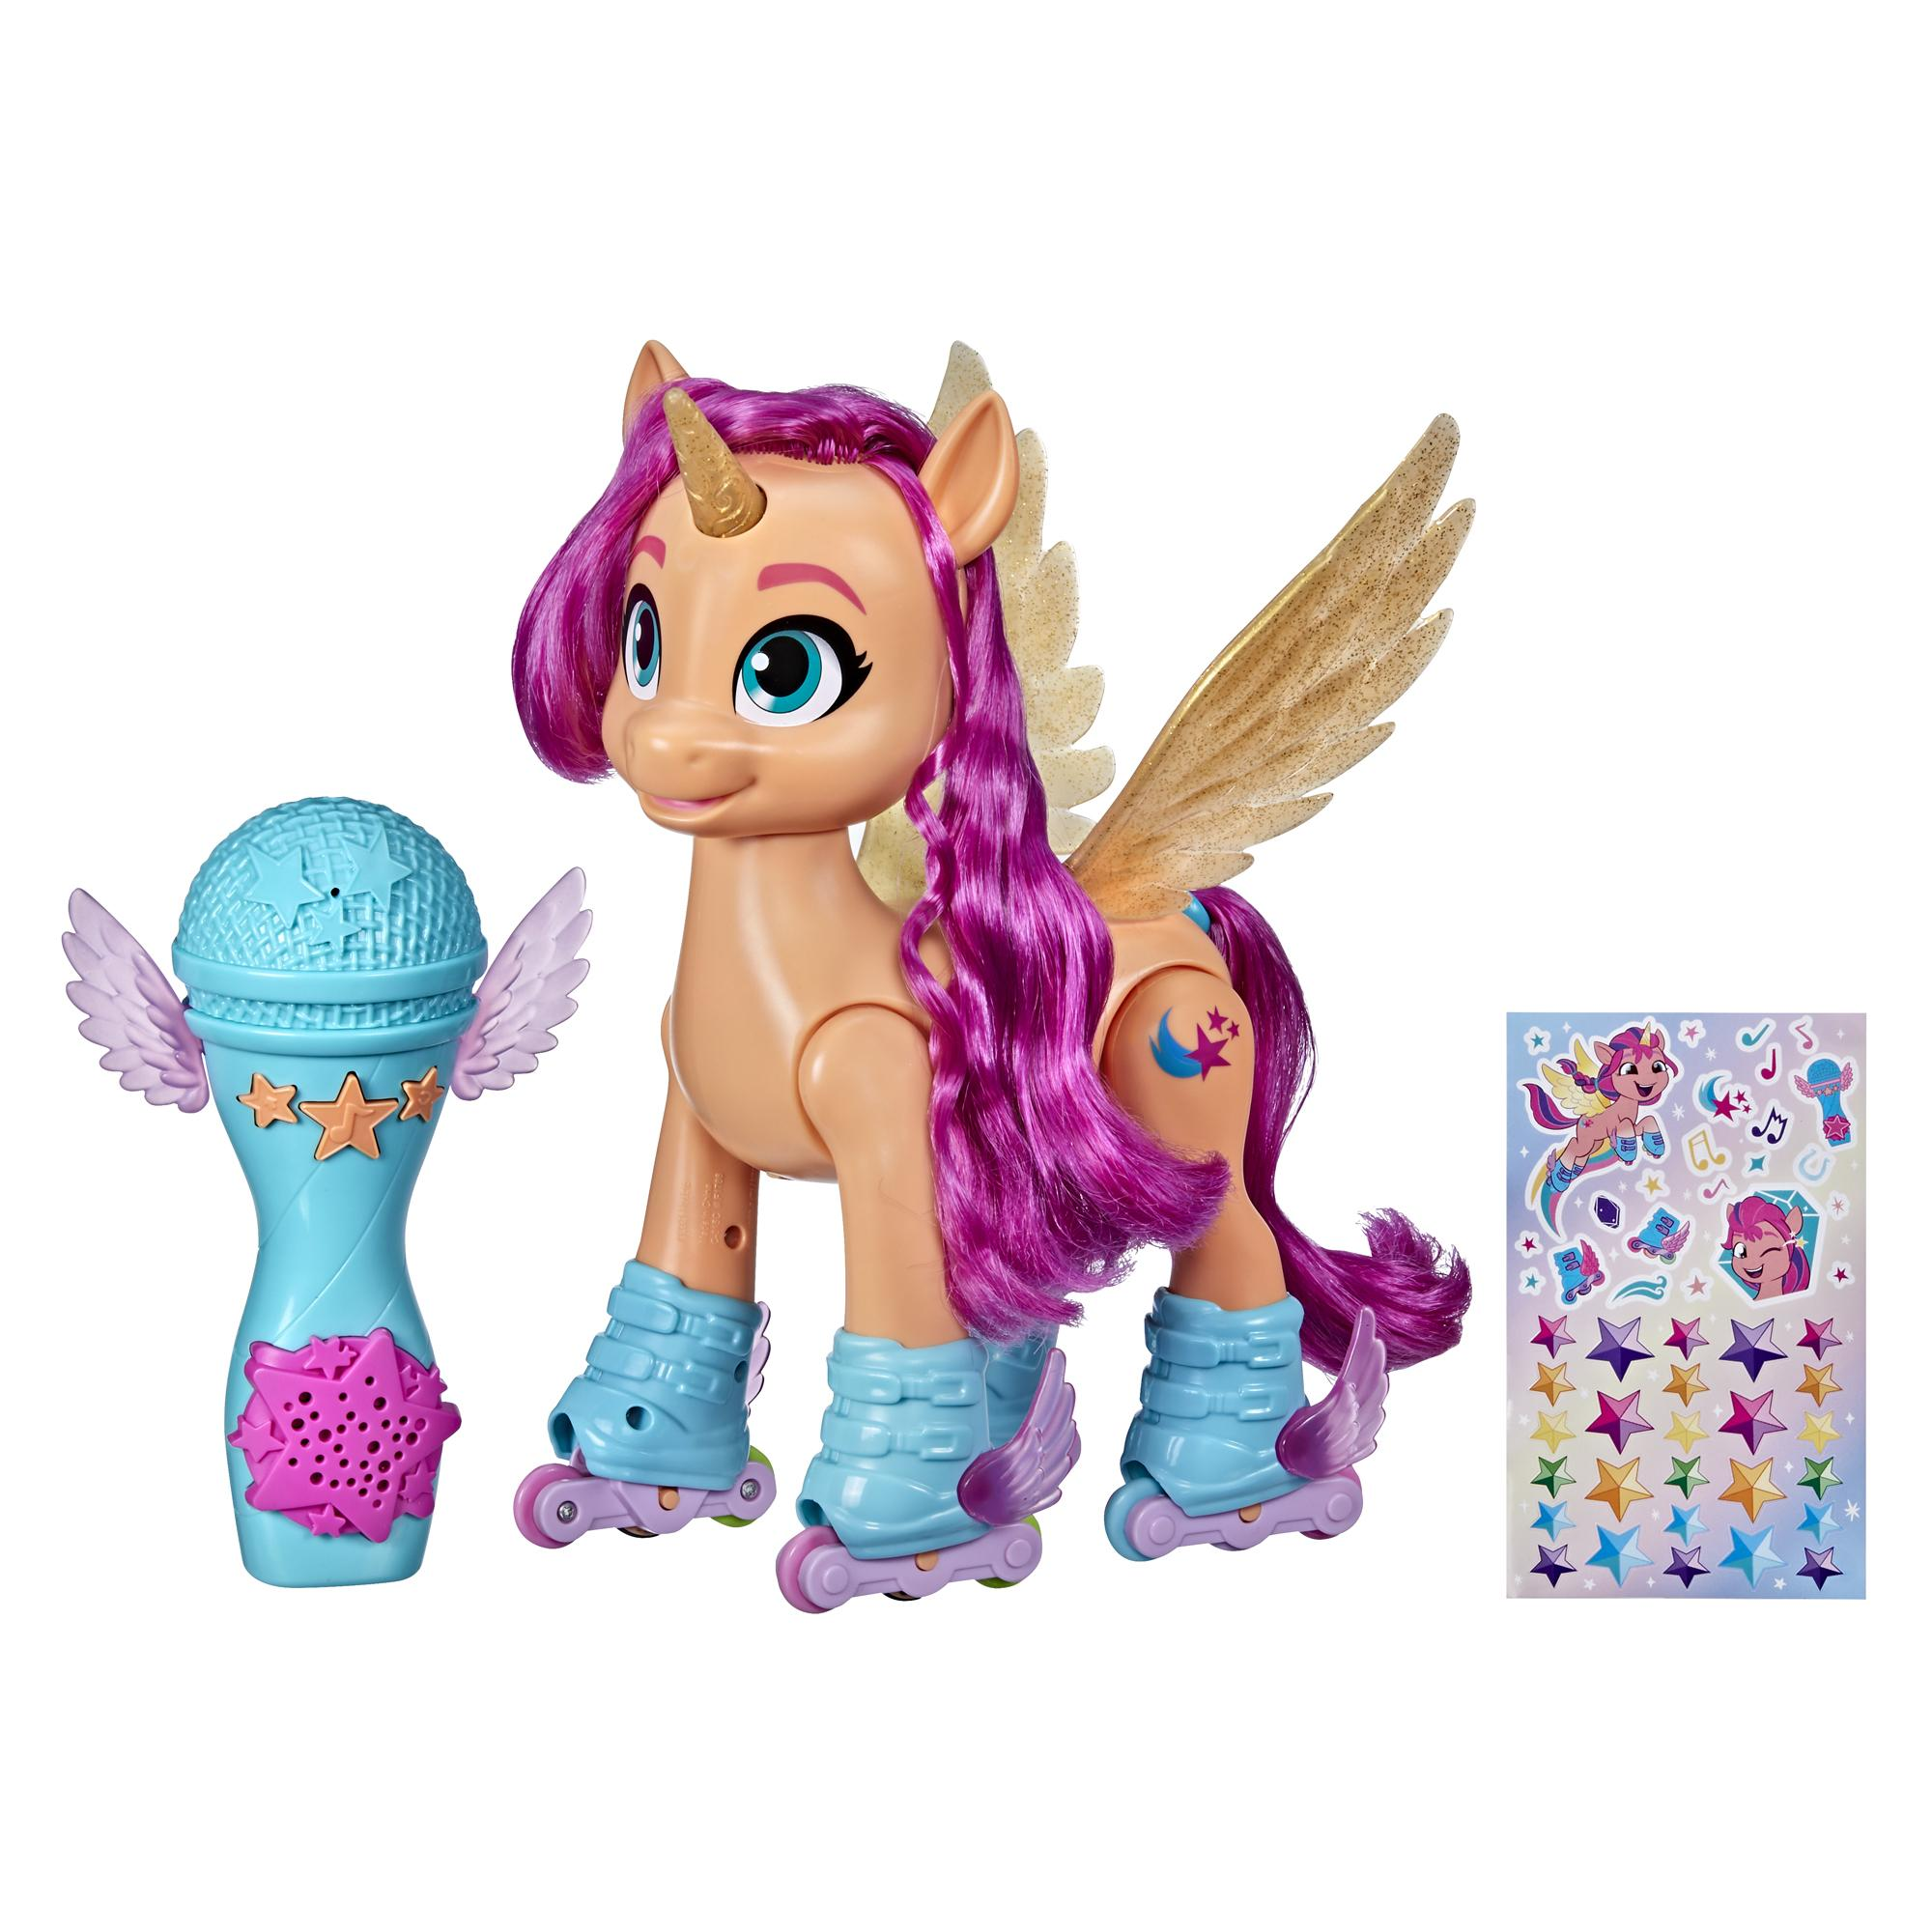 My Little Pony: A New Generation Movie Sing 'N Skate Sunny Starscout - 9-Inch Remote Control Toy, 50 Reactions, Lights and Music